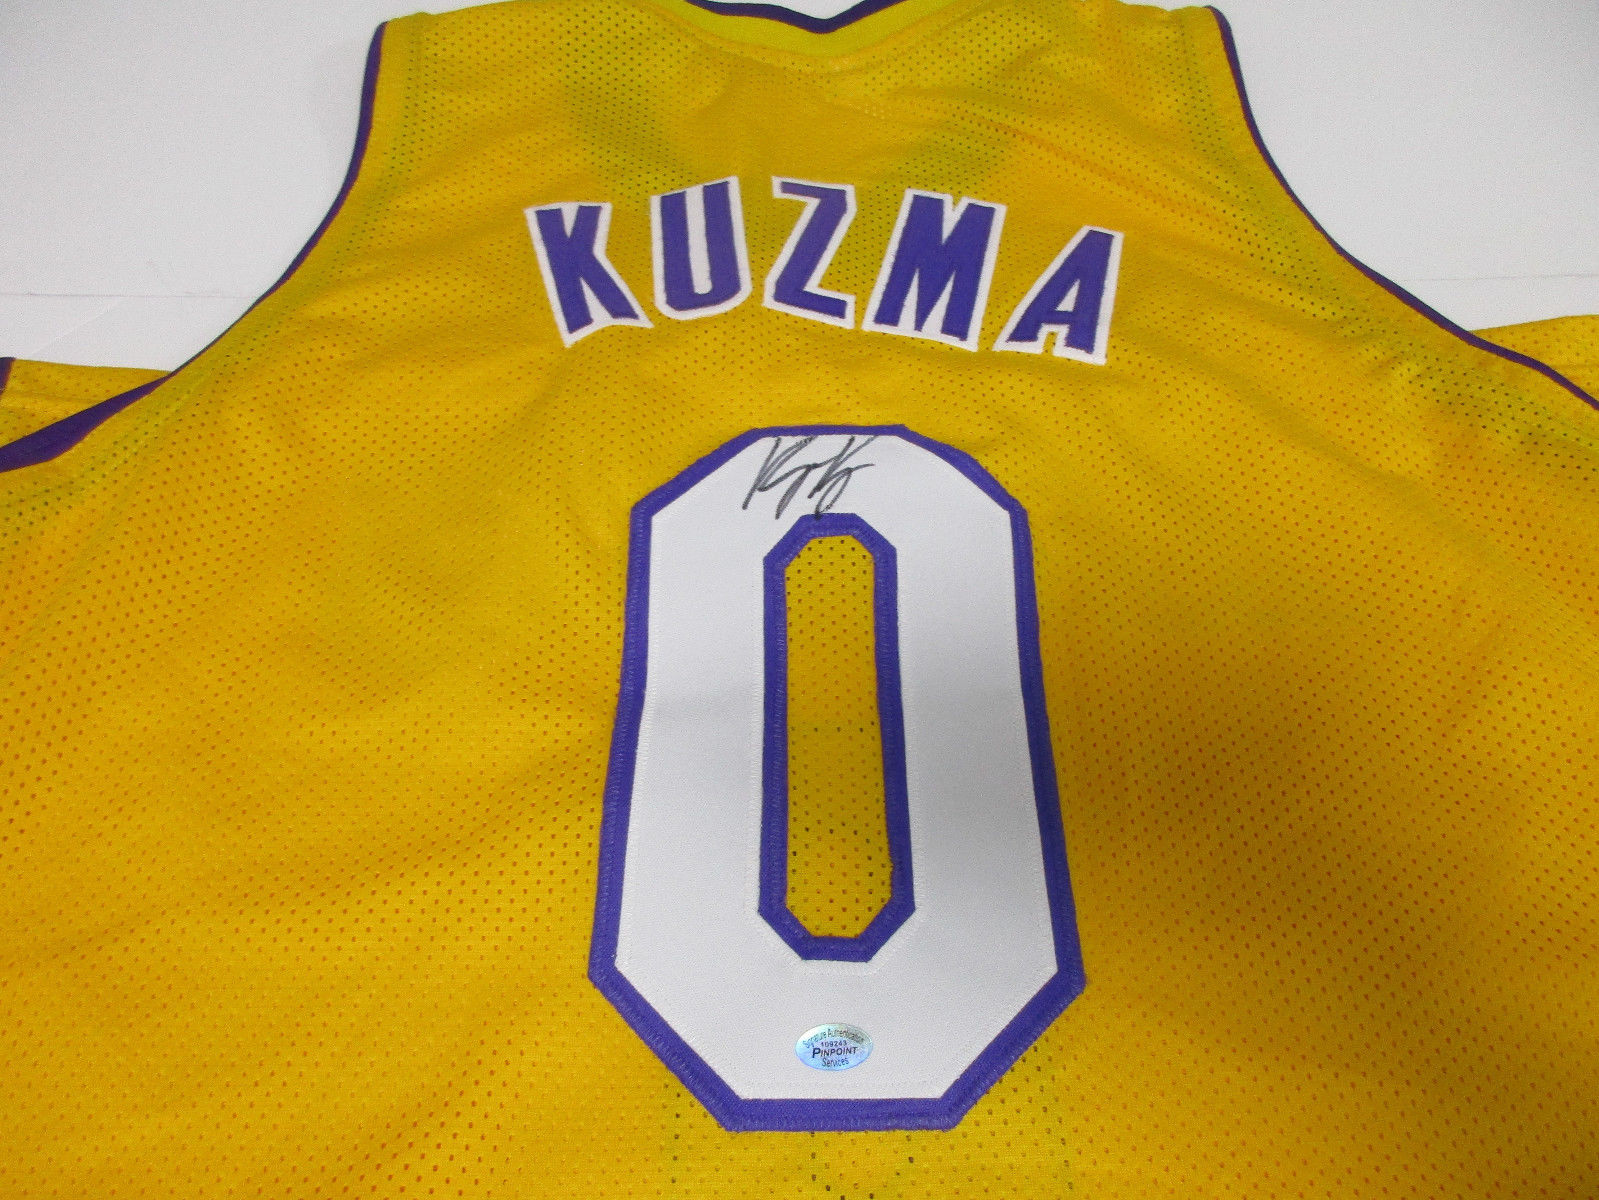 official photos 13e98 58fb4 Kyle Kuzma Los Angeles Lakers Signed Jersey / 1st Round Pick 2017 NBA Draft  /COA